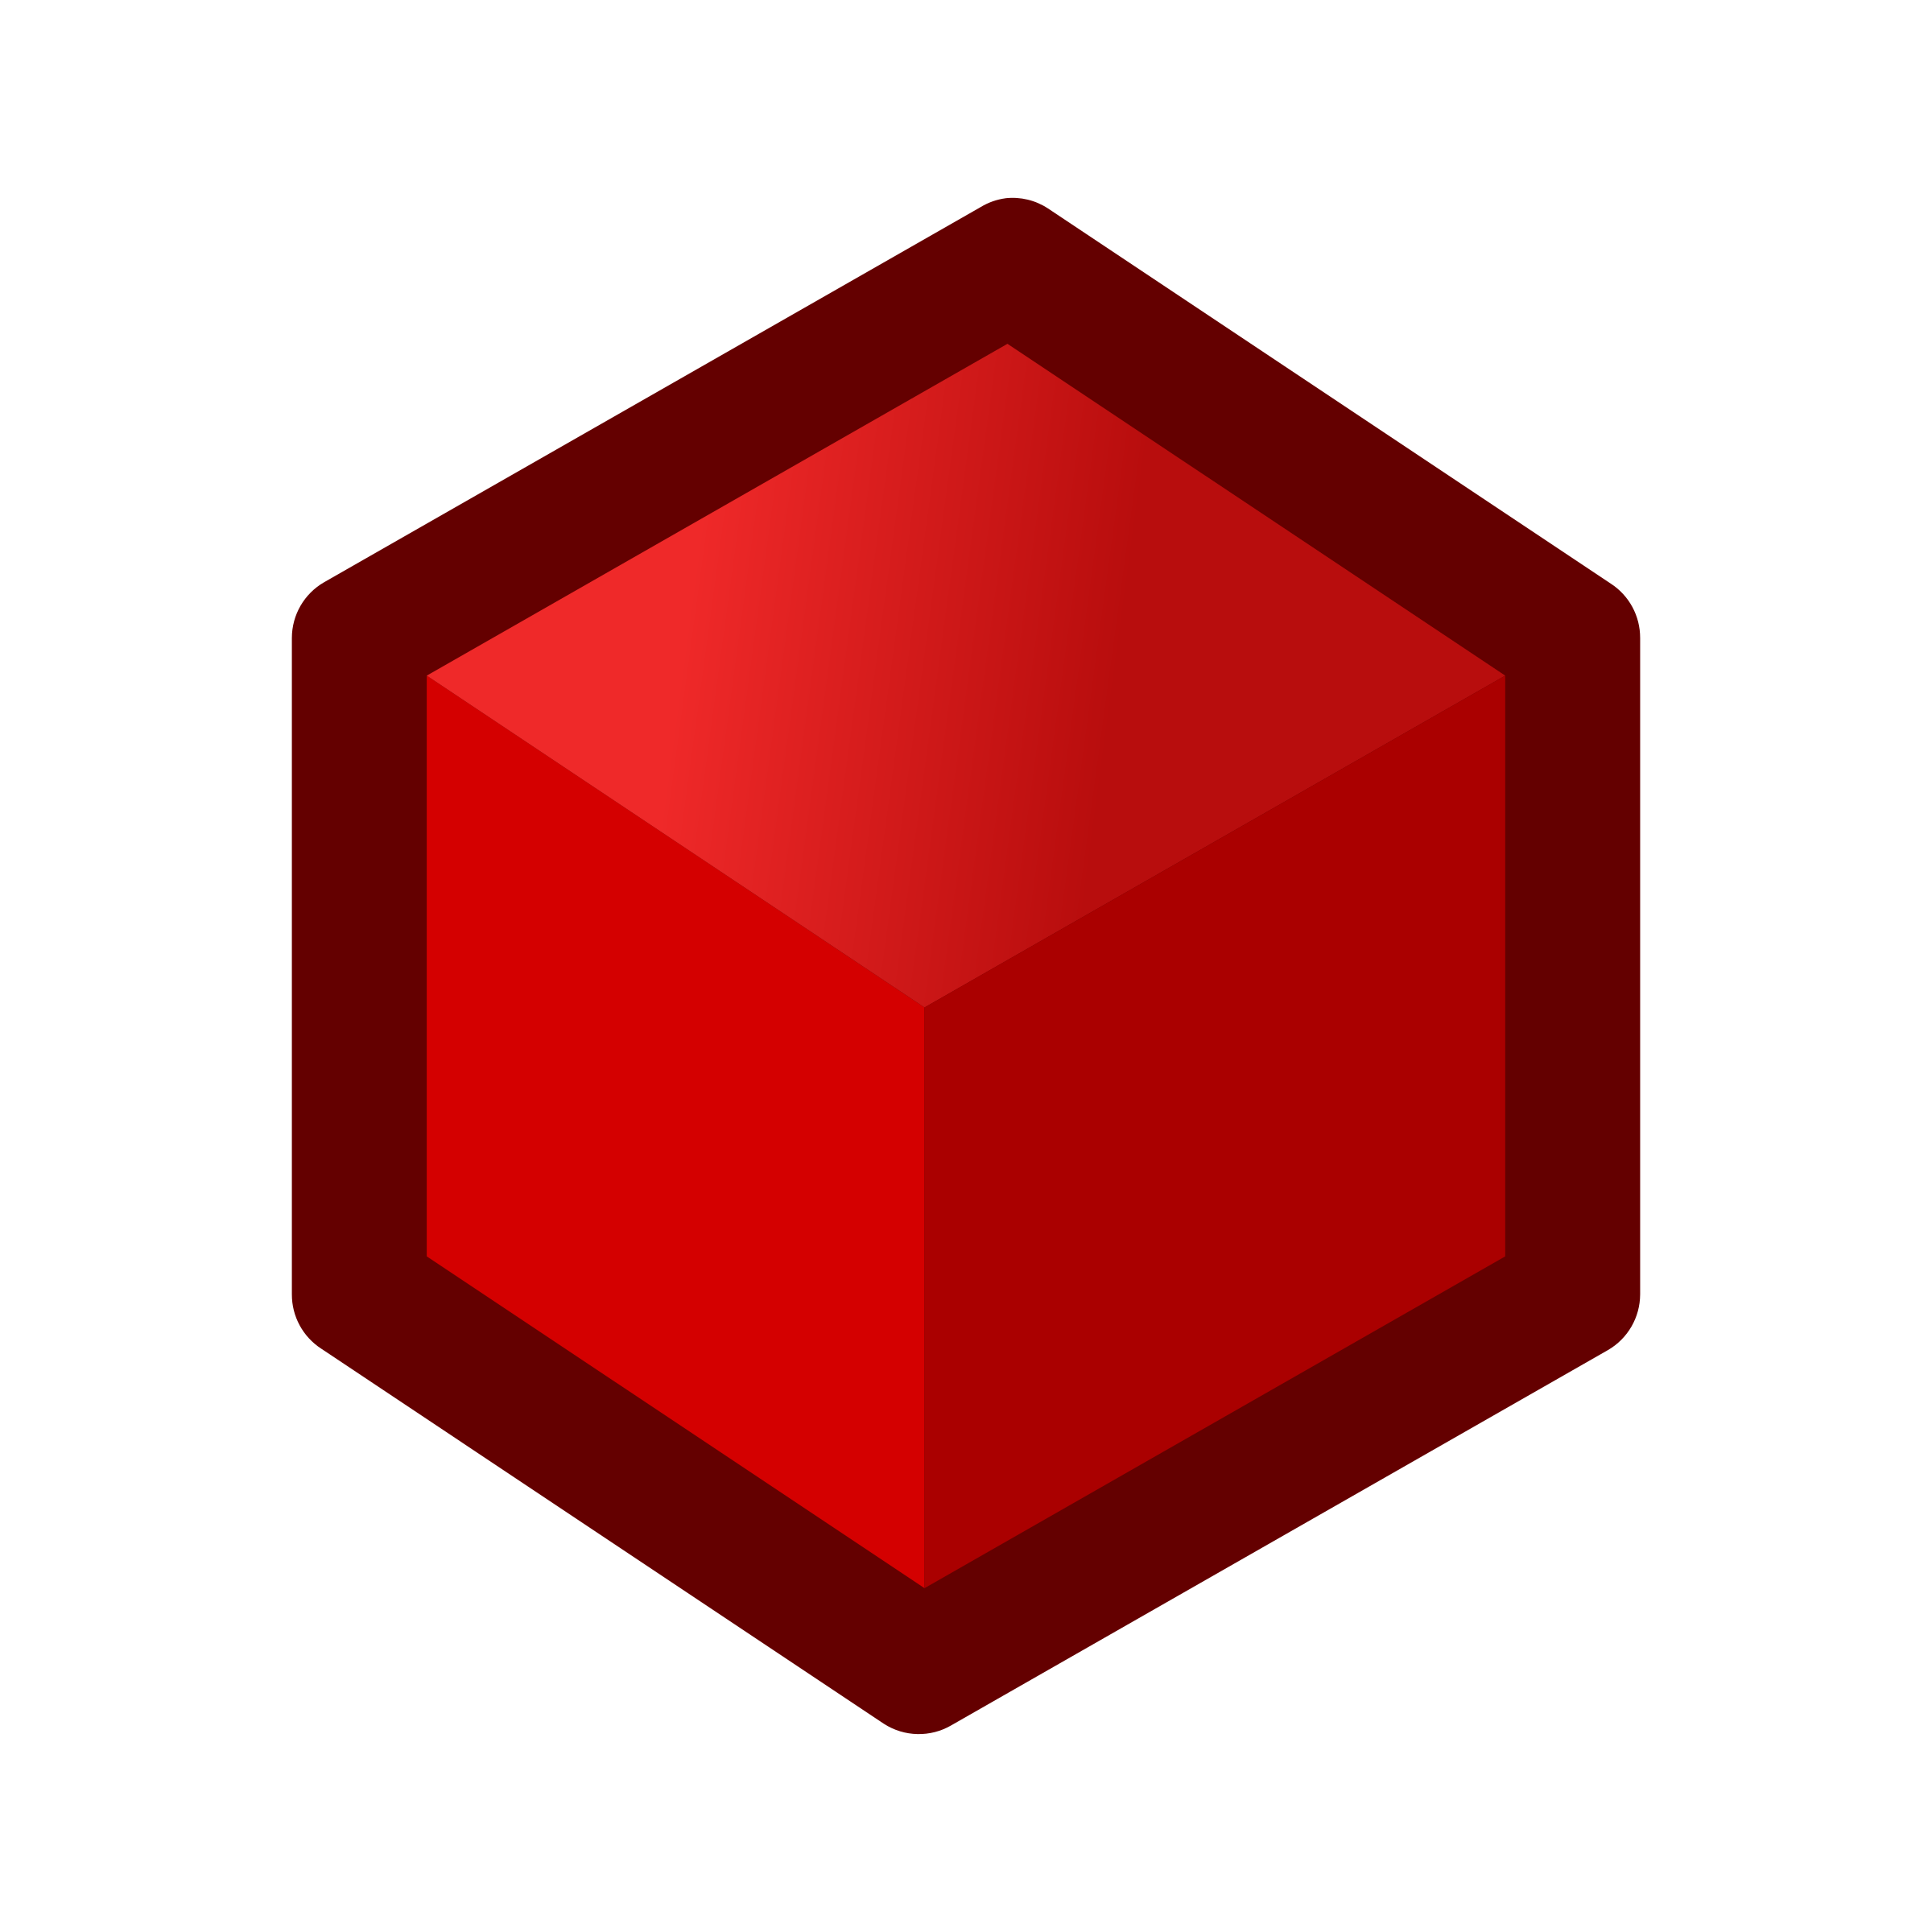 Cube clipart neon cassette tape. Icon red png image